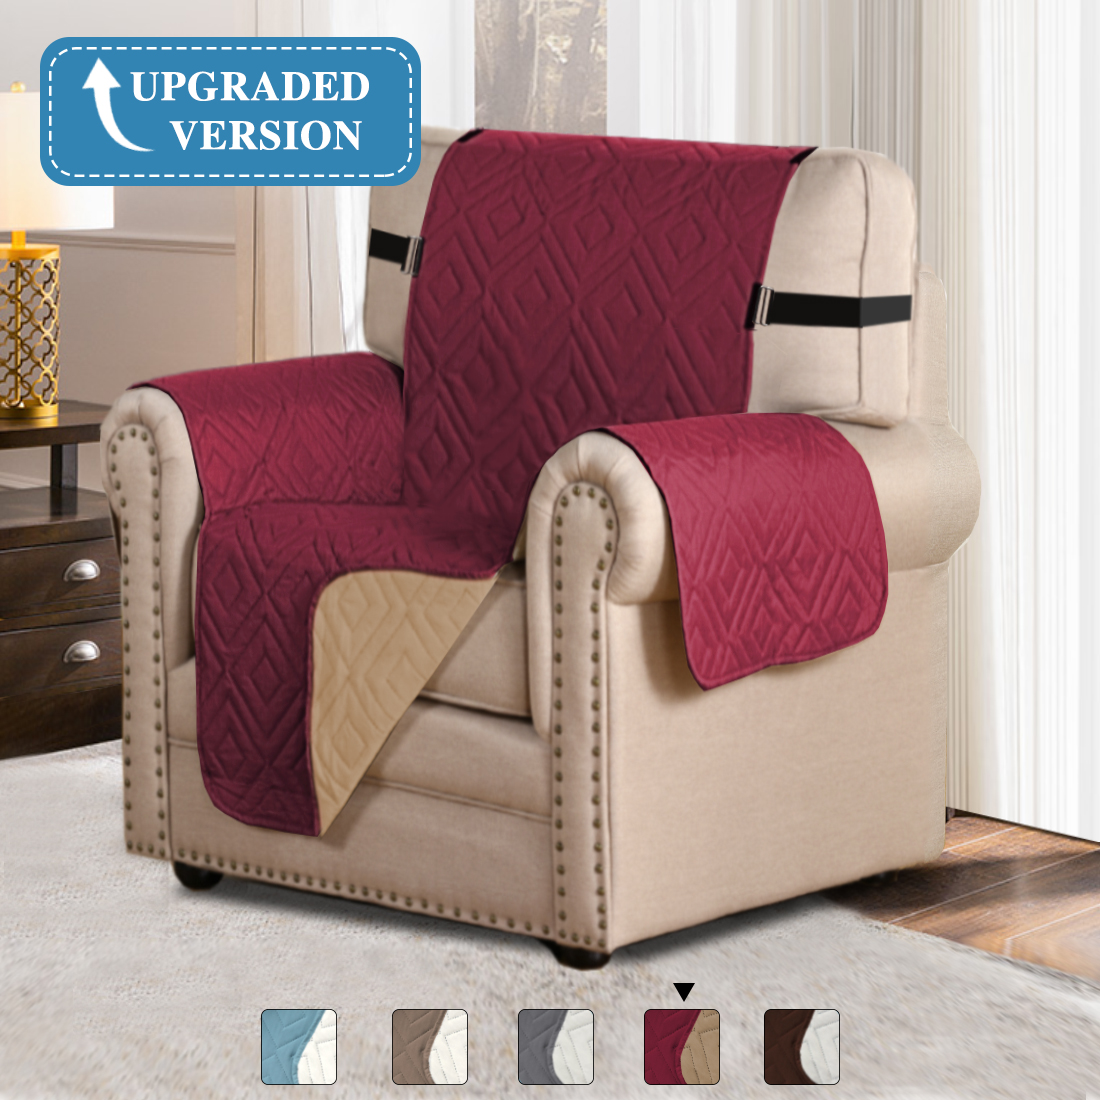 Sofa Covers Slipcovers Reversible Quilted Furniture Protector 75